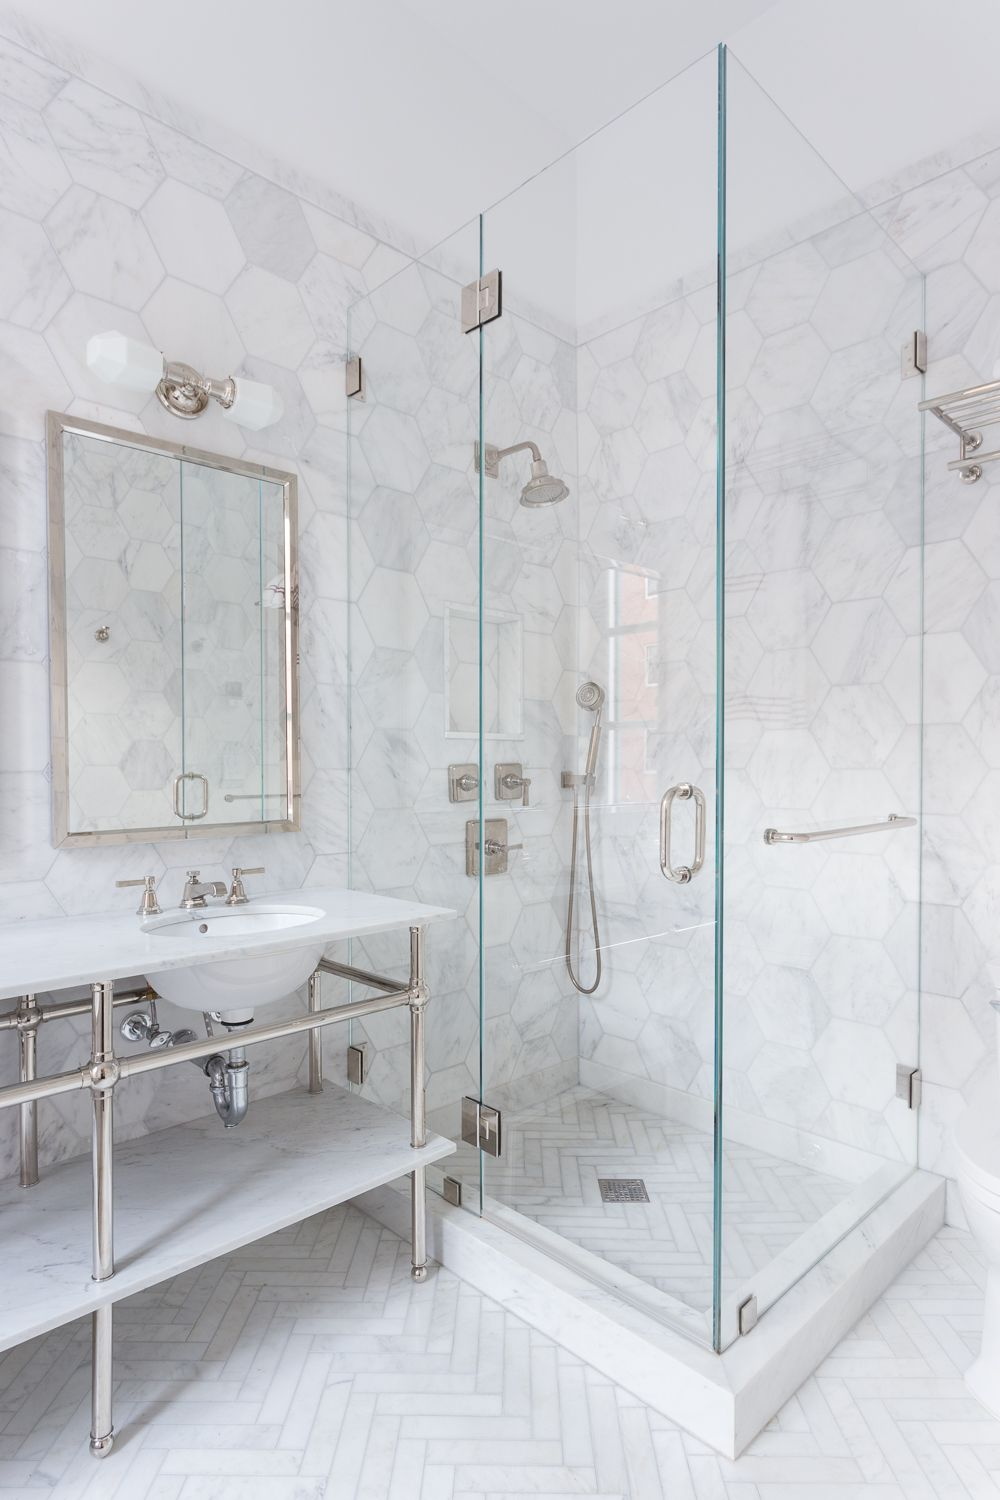 34 stunning marble bathrooms with silver fixtures hexagons white marble and marbles Marble hex tile bathroom floor